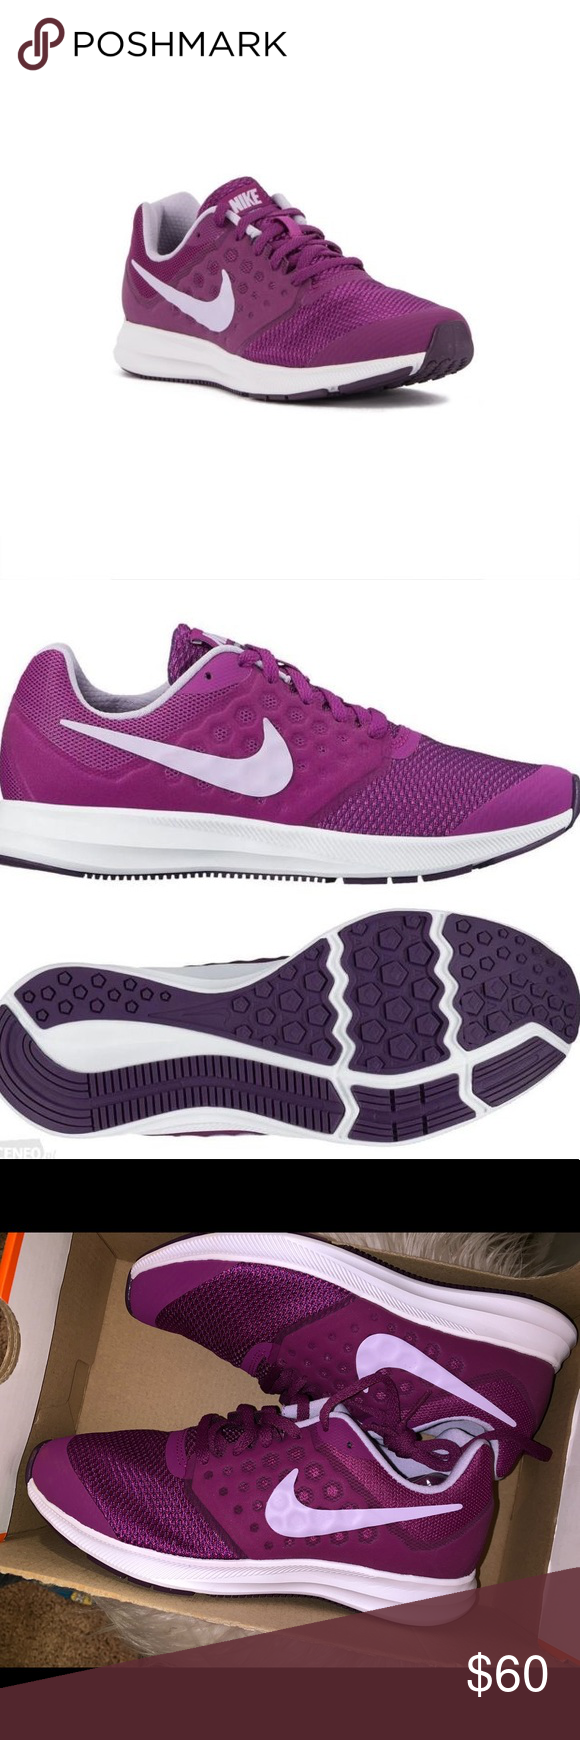 f754b8ebd1 Nike Downshifter 7 (gs) - 4 1/2 Kids 6 1/2 Women Nike Downshifter 7 (gs)  Youth Girls Athlethic Running Casual Shoes 4 1/2 youth or 6 1/2 women Nike  Shoes ...